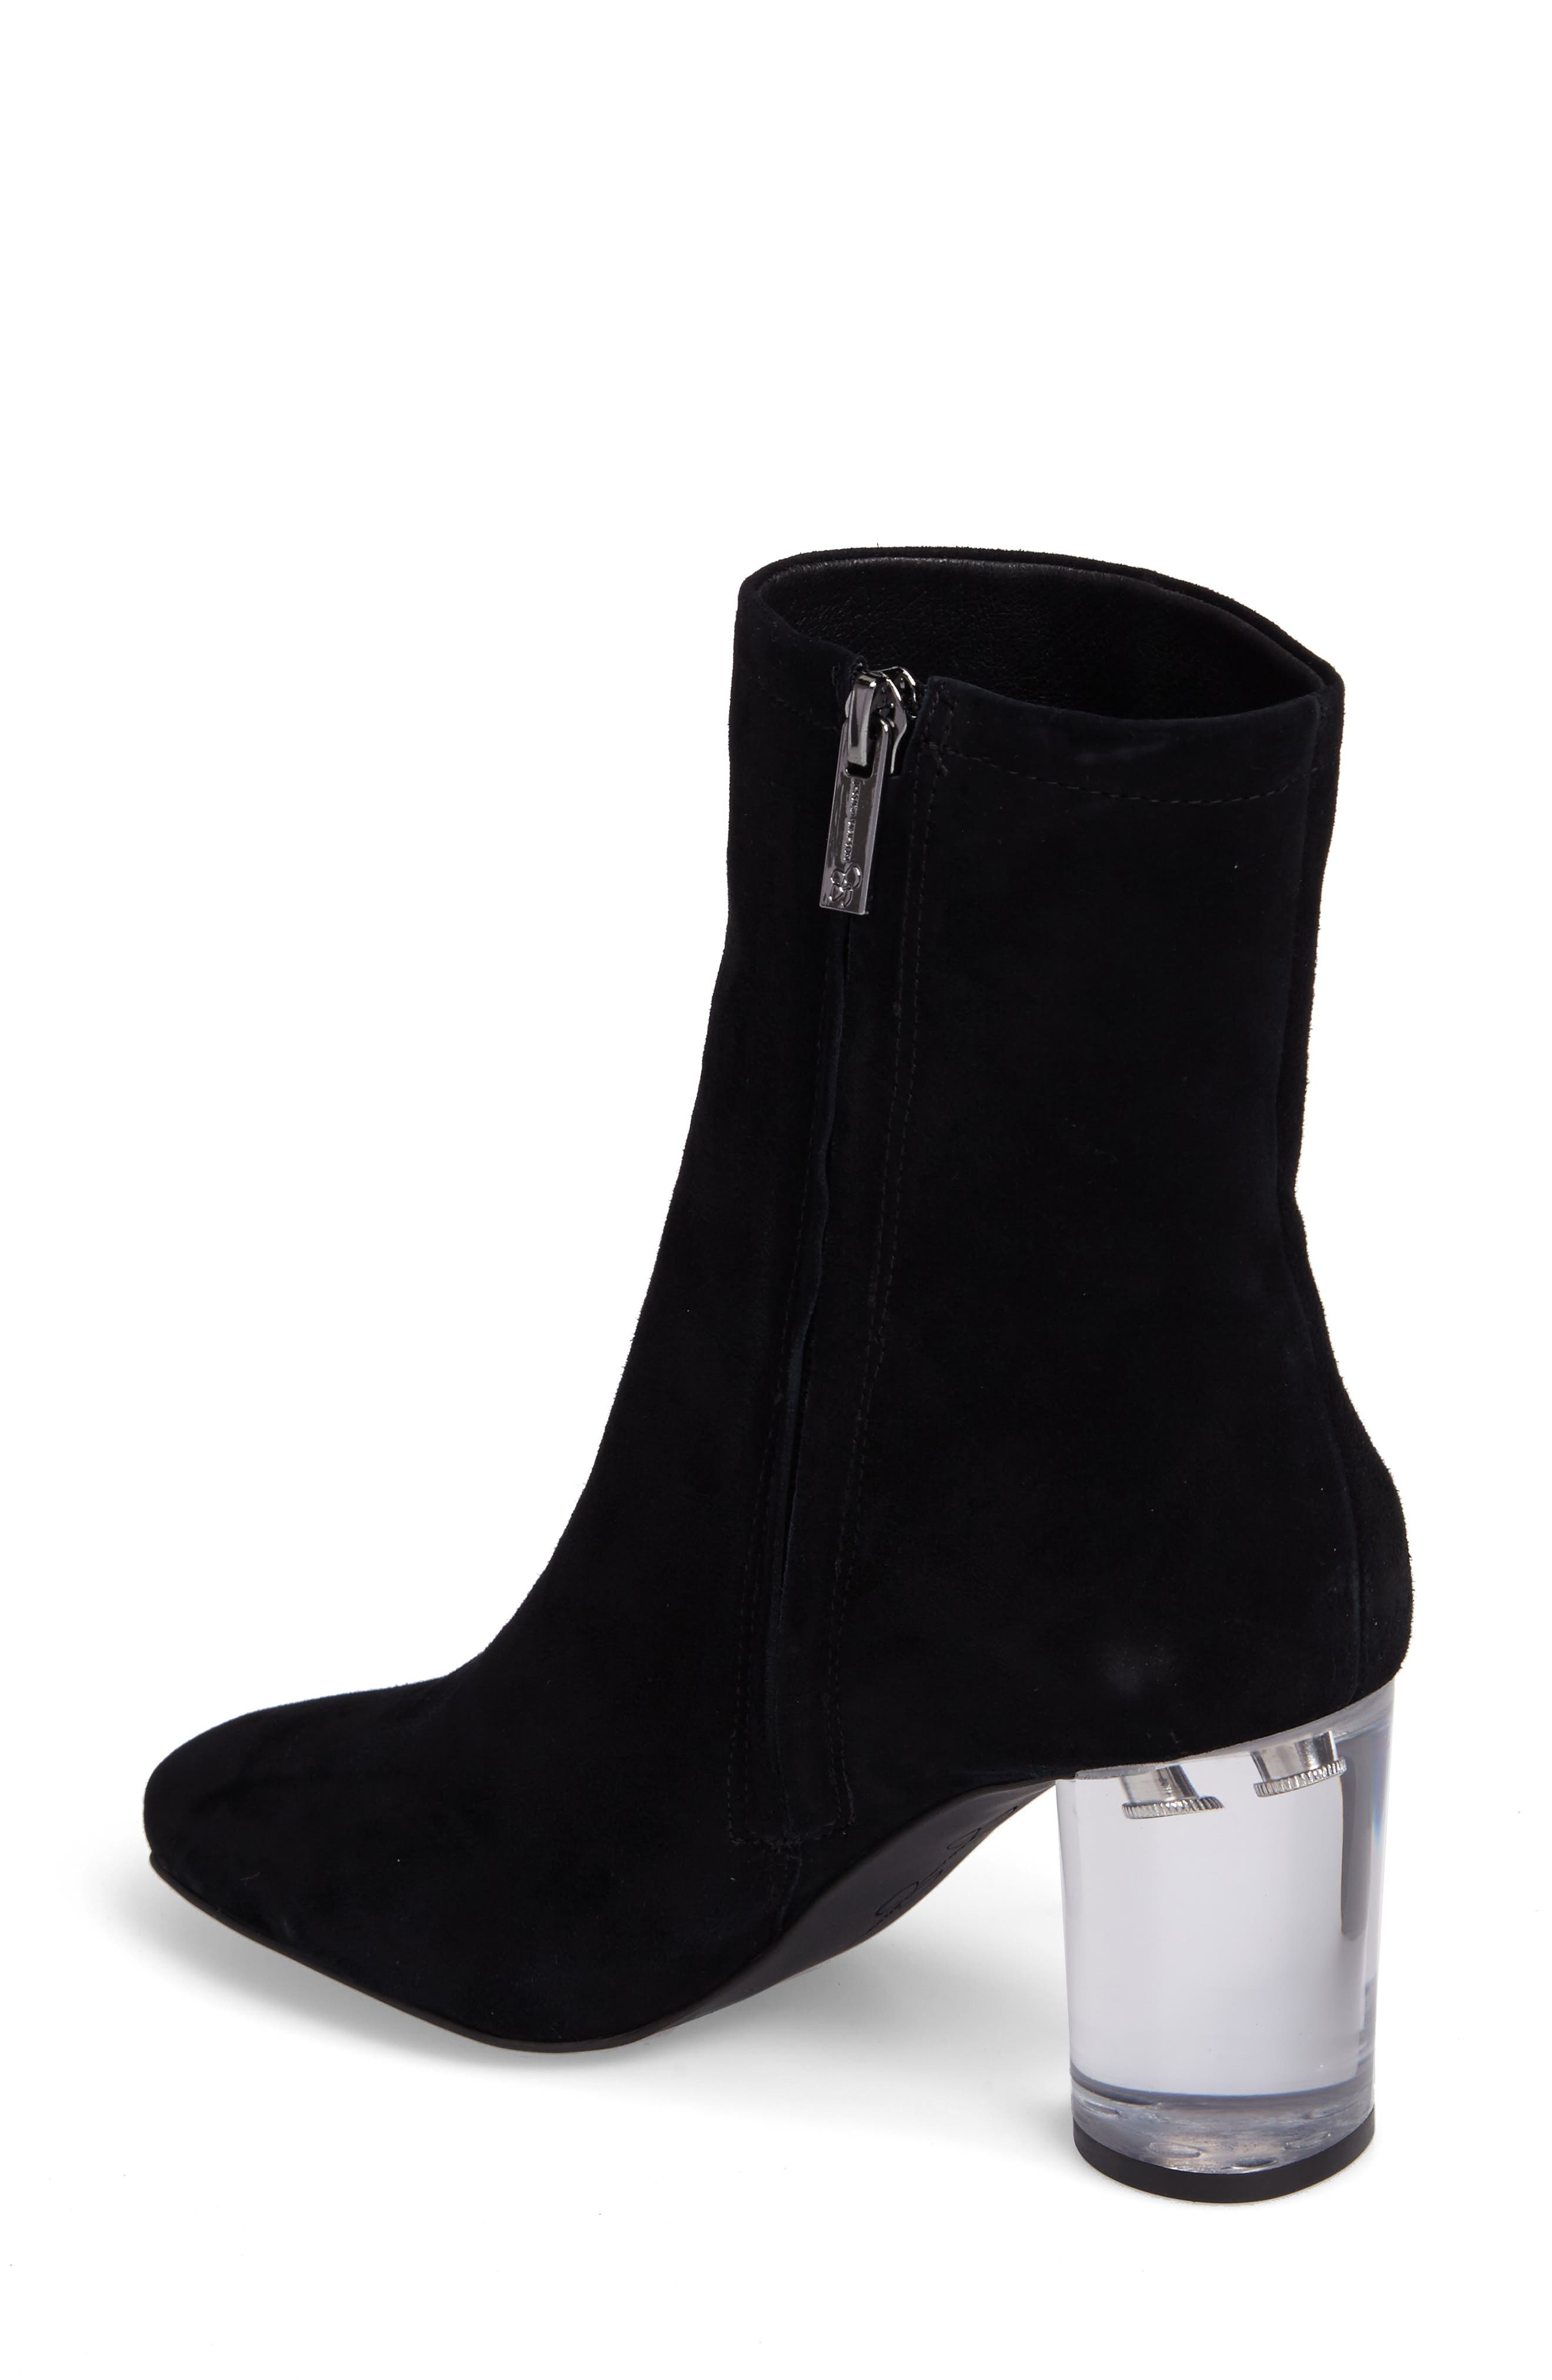 Merta Column Heel Bootie,                             Alternate thumbnail 2, color,                             001